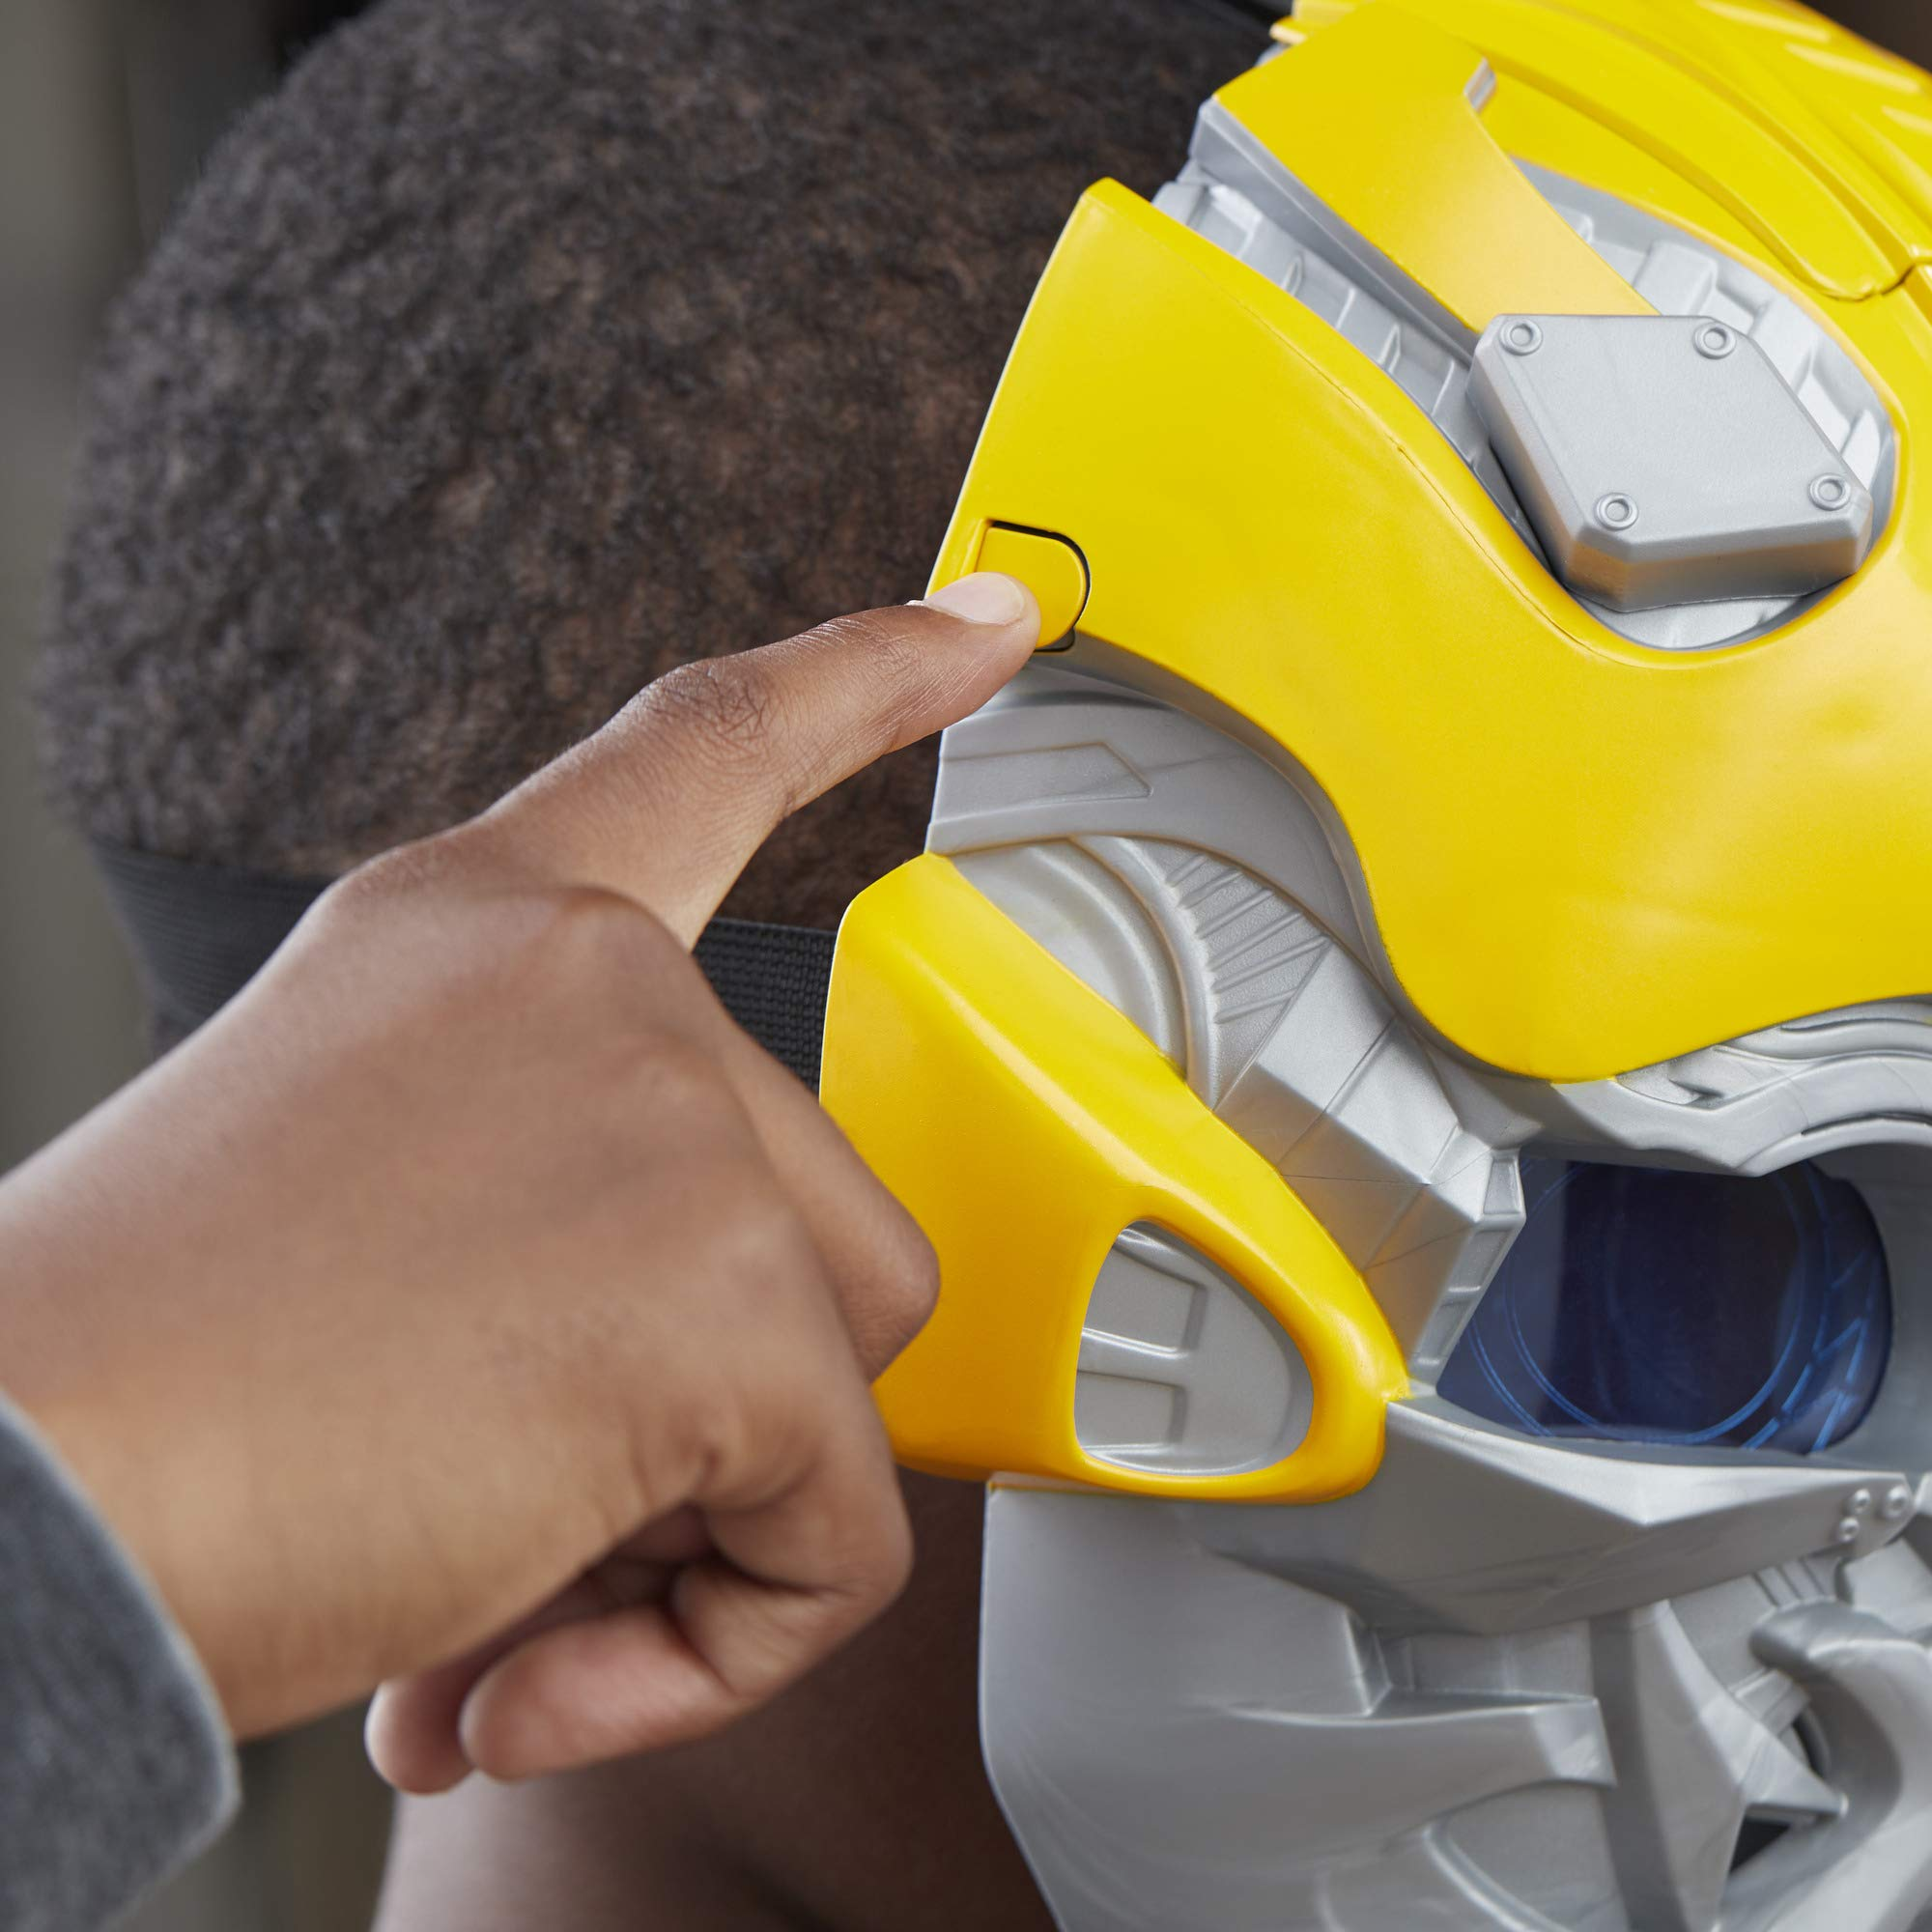 Transformers: Bumblebee -- Bumblebee Voice Changer Mask by Transformers (Image #6)